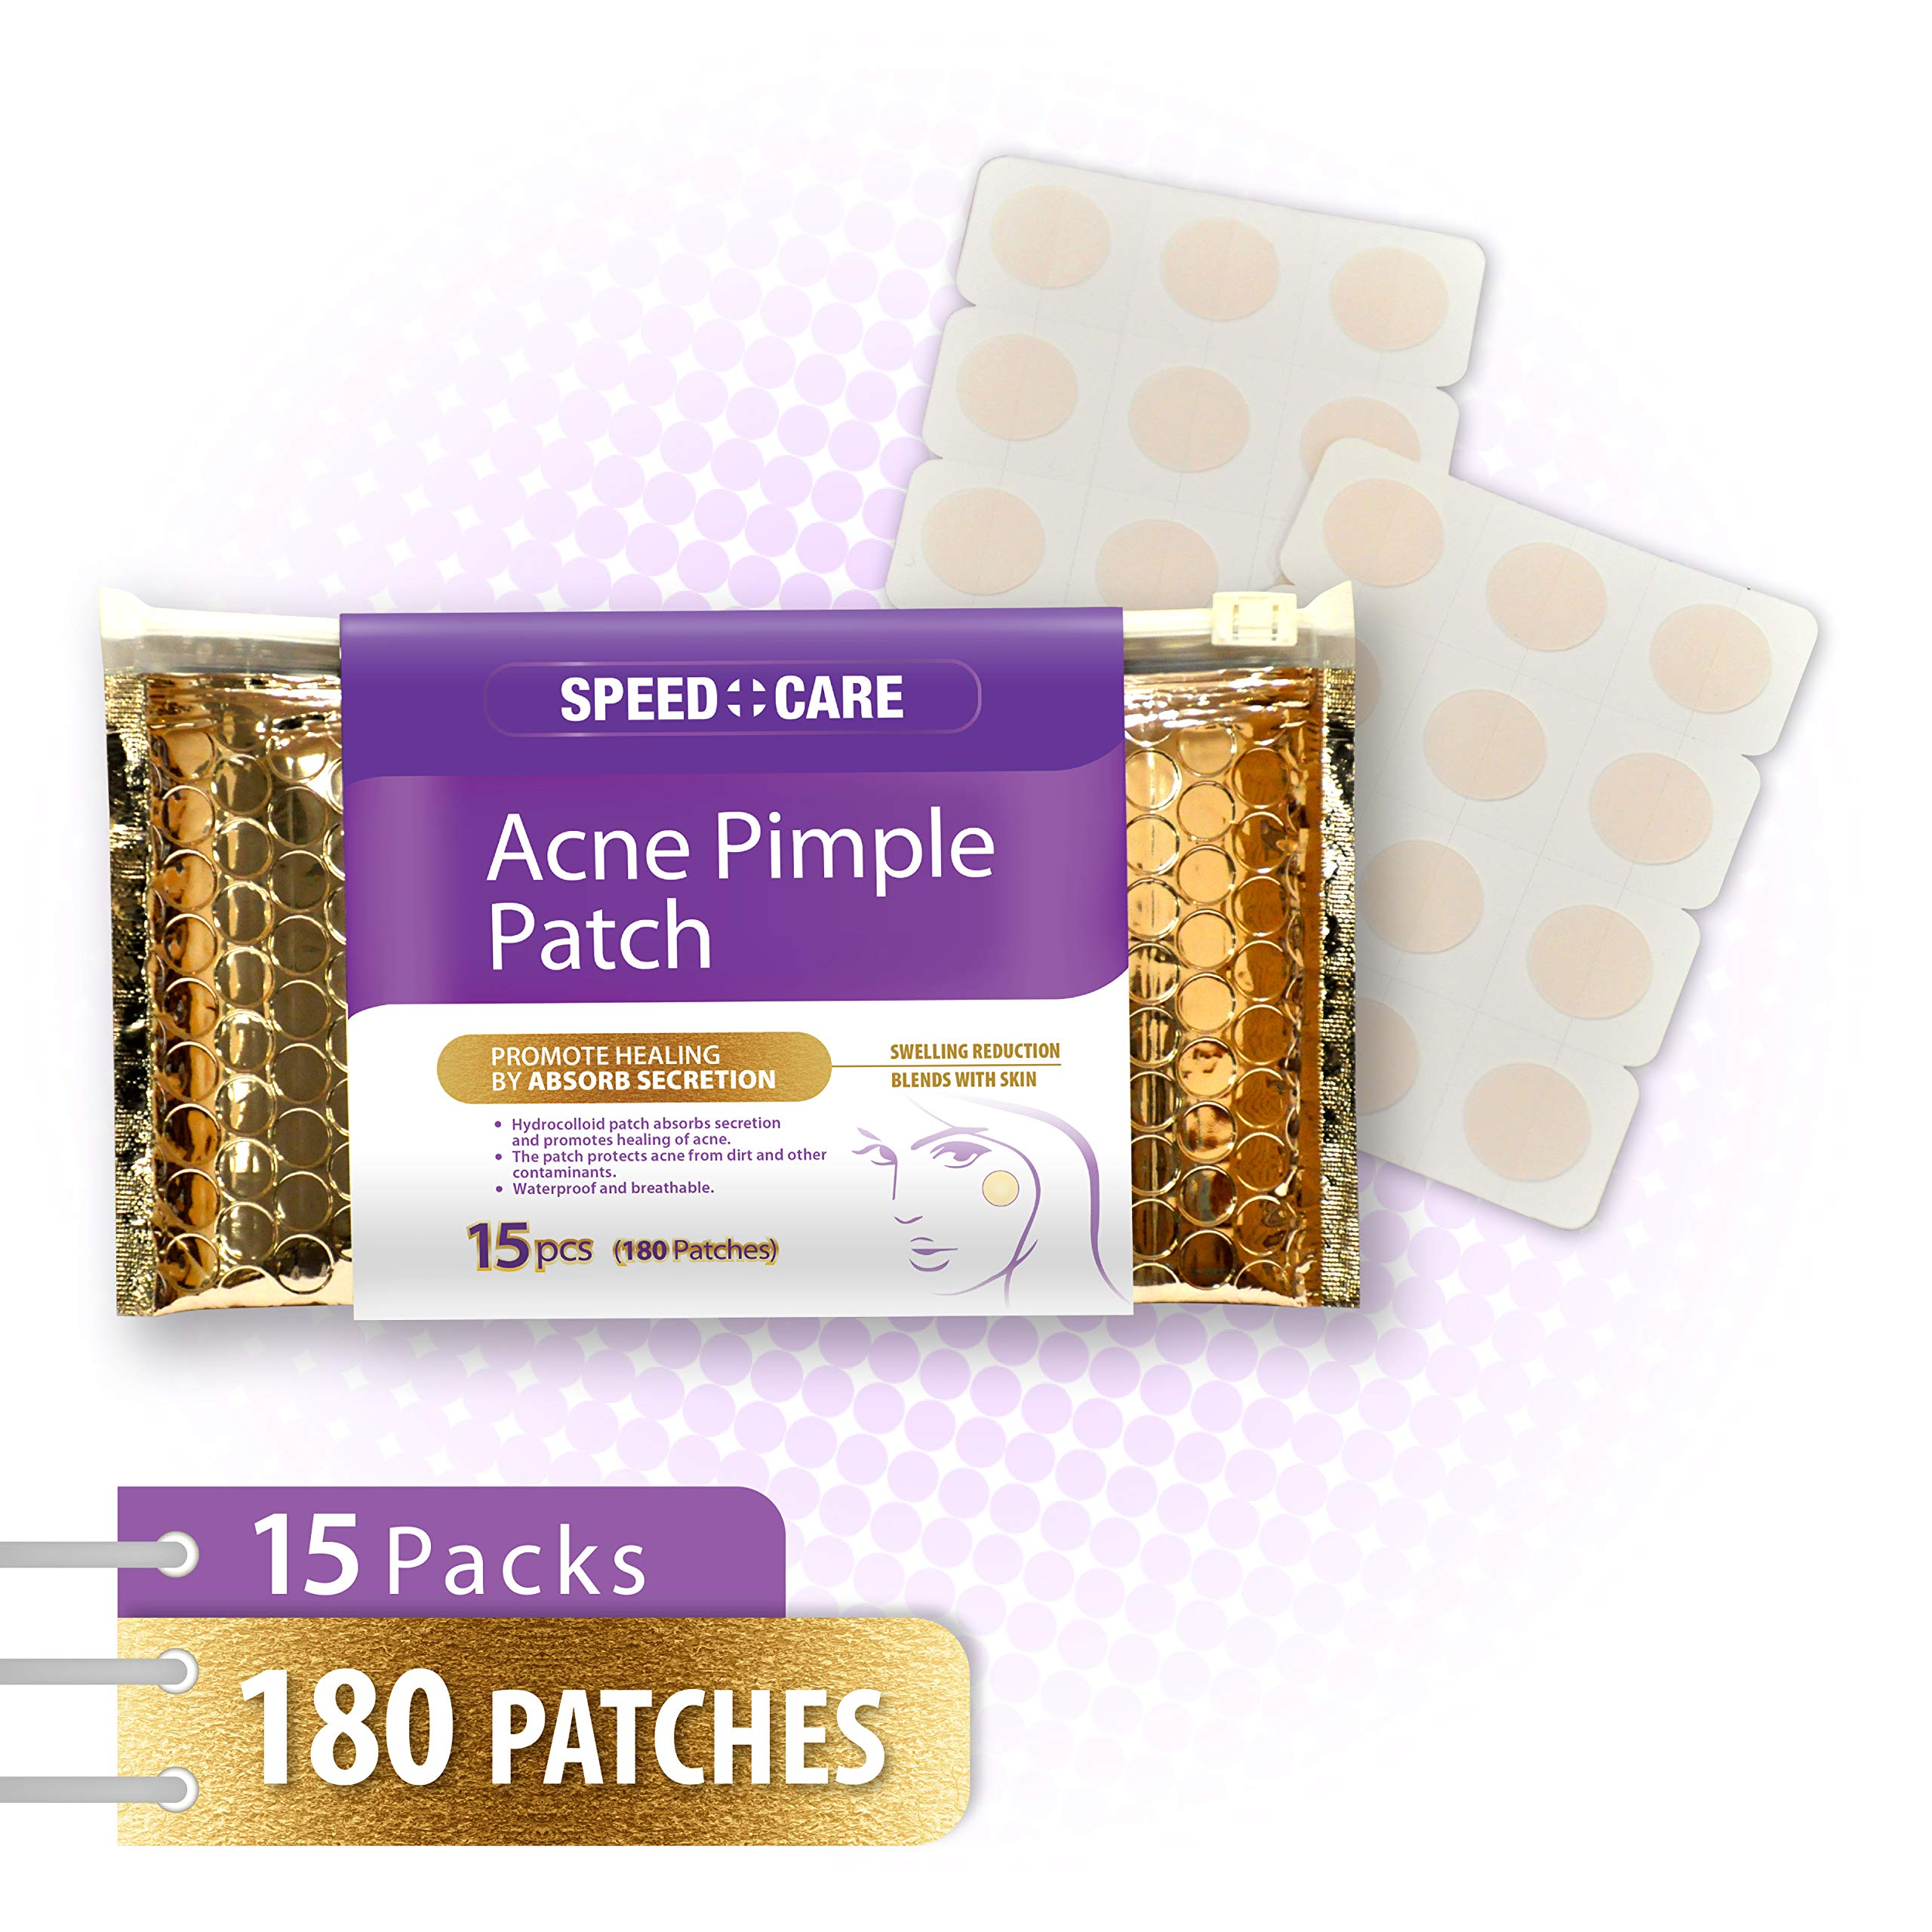 SPEED CARE Premium Hydrocolloid Acne Pimple Stickers Patch Value Pack Combo 180 Patches by SPEED CARE